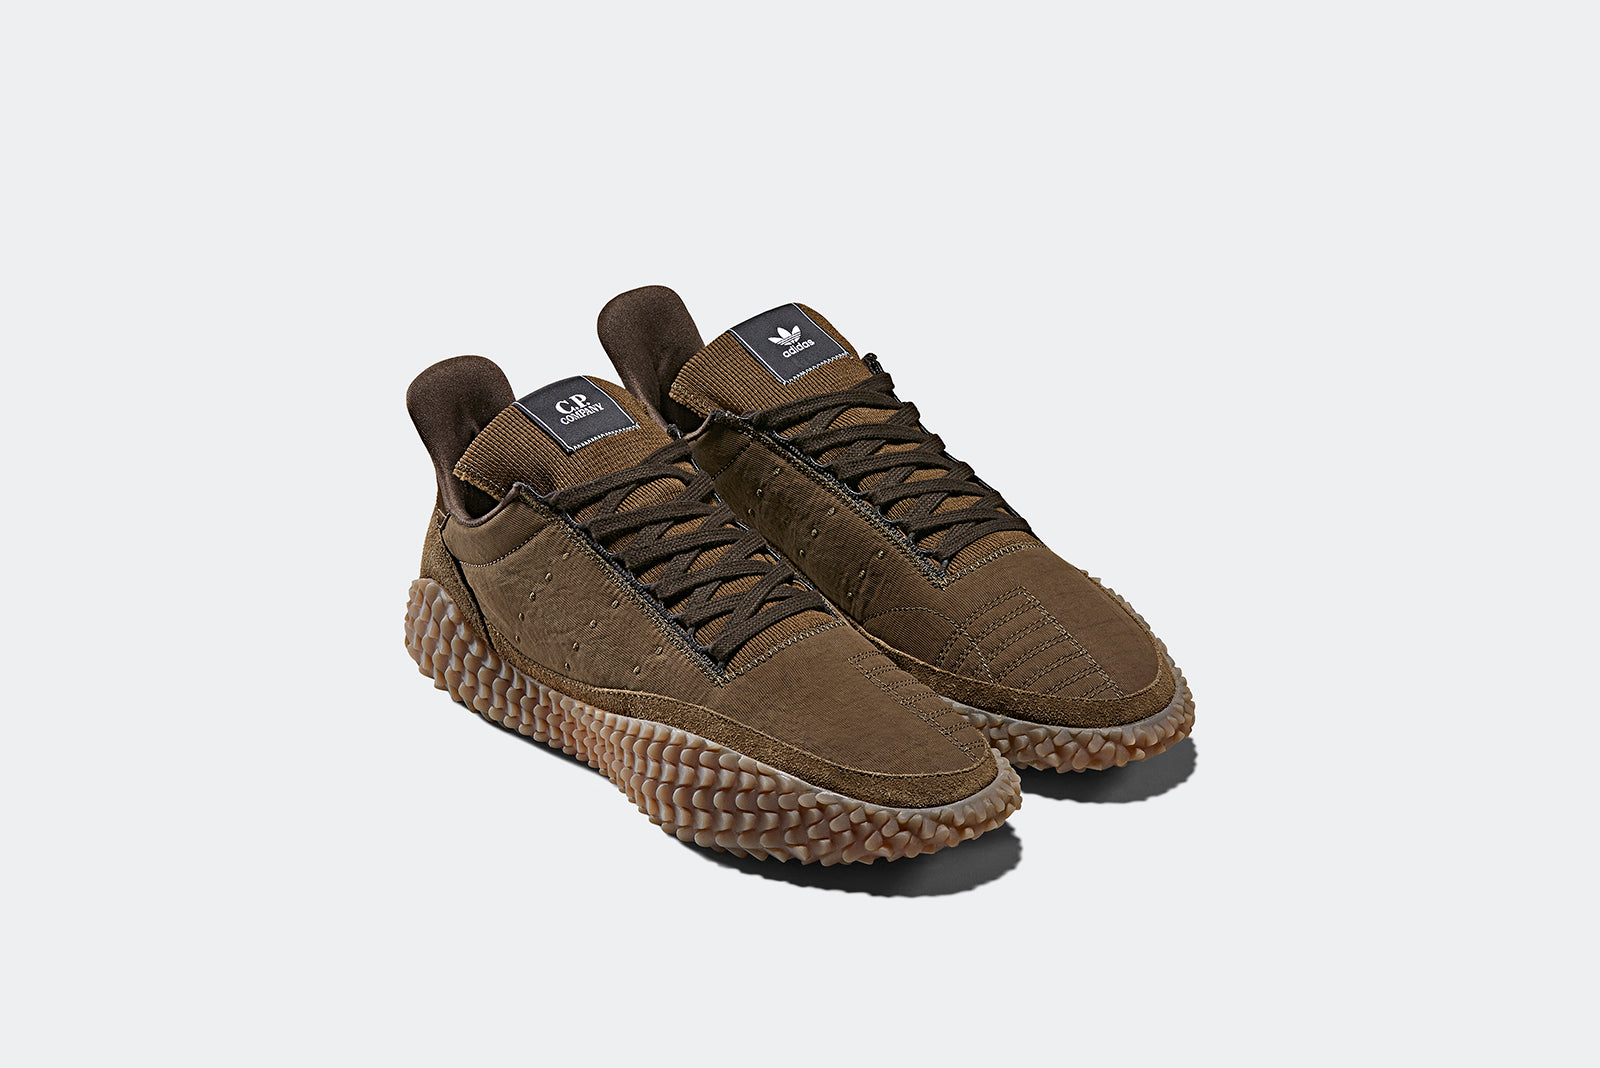 e60738dfa3bca9 adidas Kamanda Made In Italy x C.P. Company CG5952 Brown Gum Price   £329.00. Launch  Thursday 23rd of August ONLINE  23 00BST